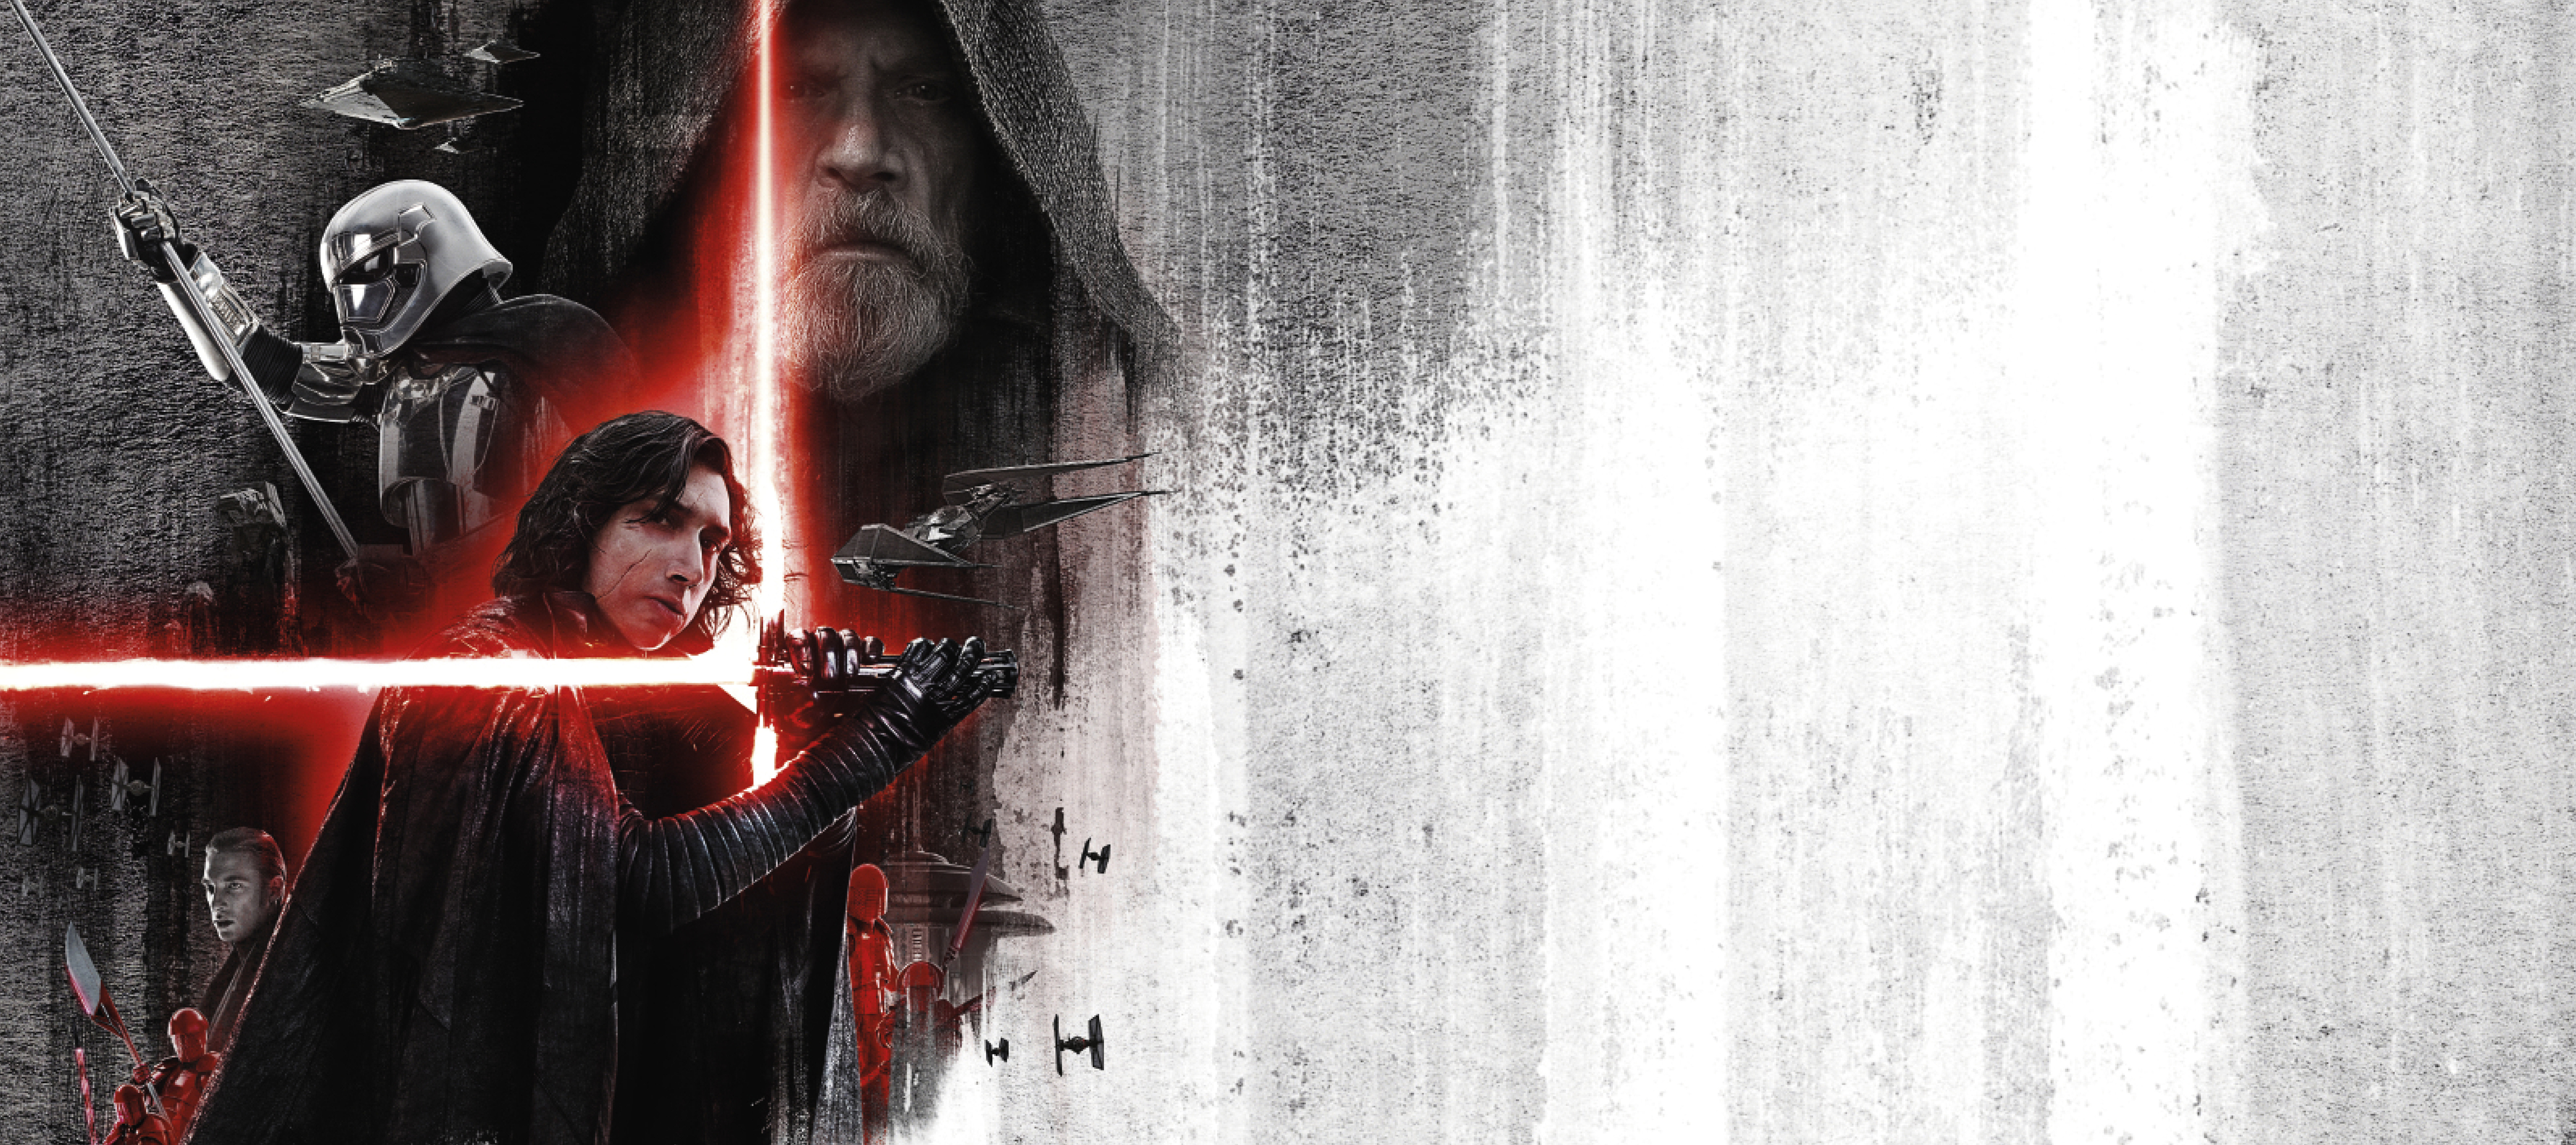 Star Wars Wallpaper The Last Jedi Posted By Christopher Walker